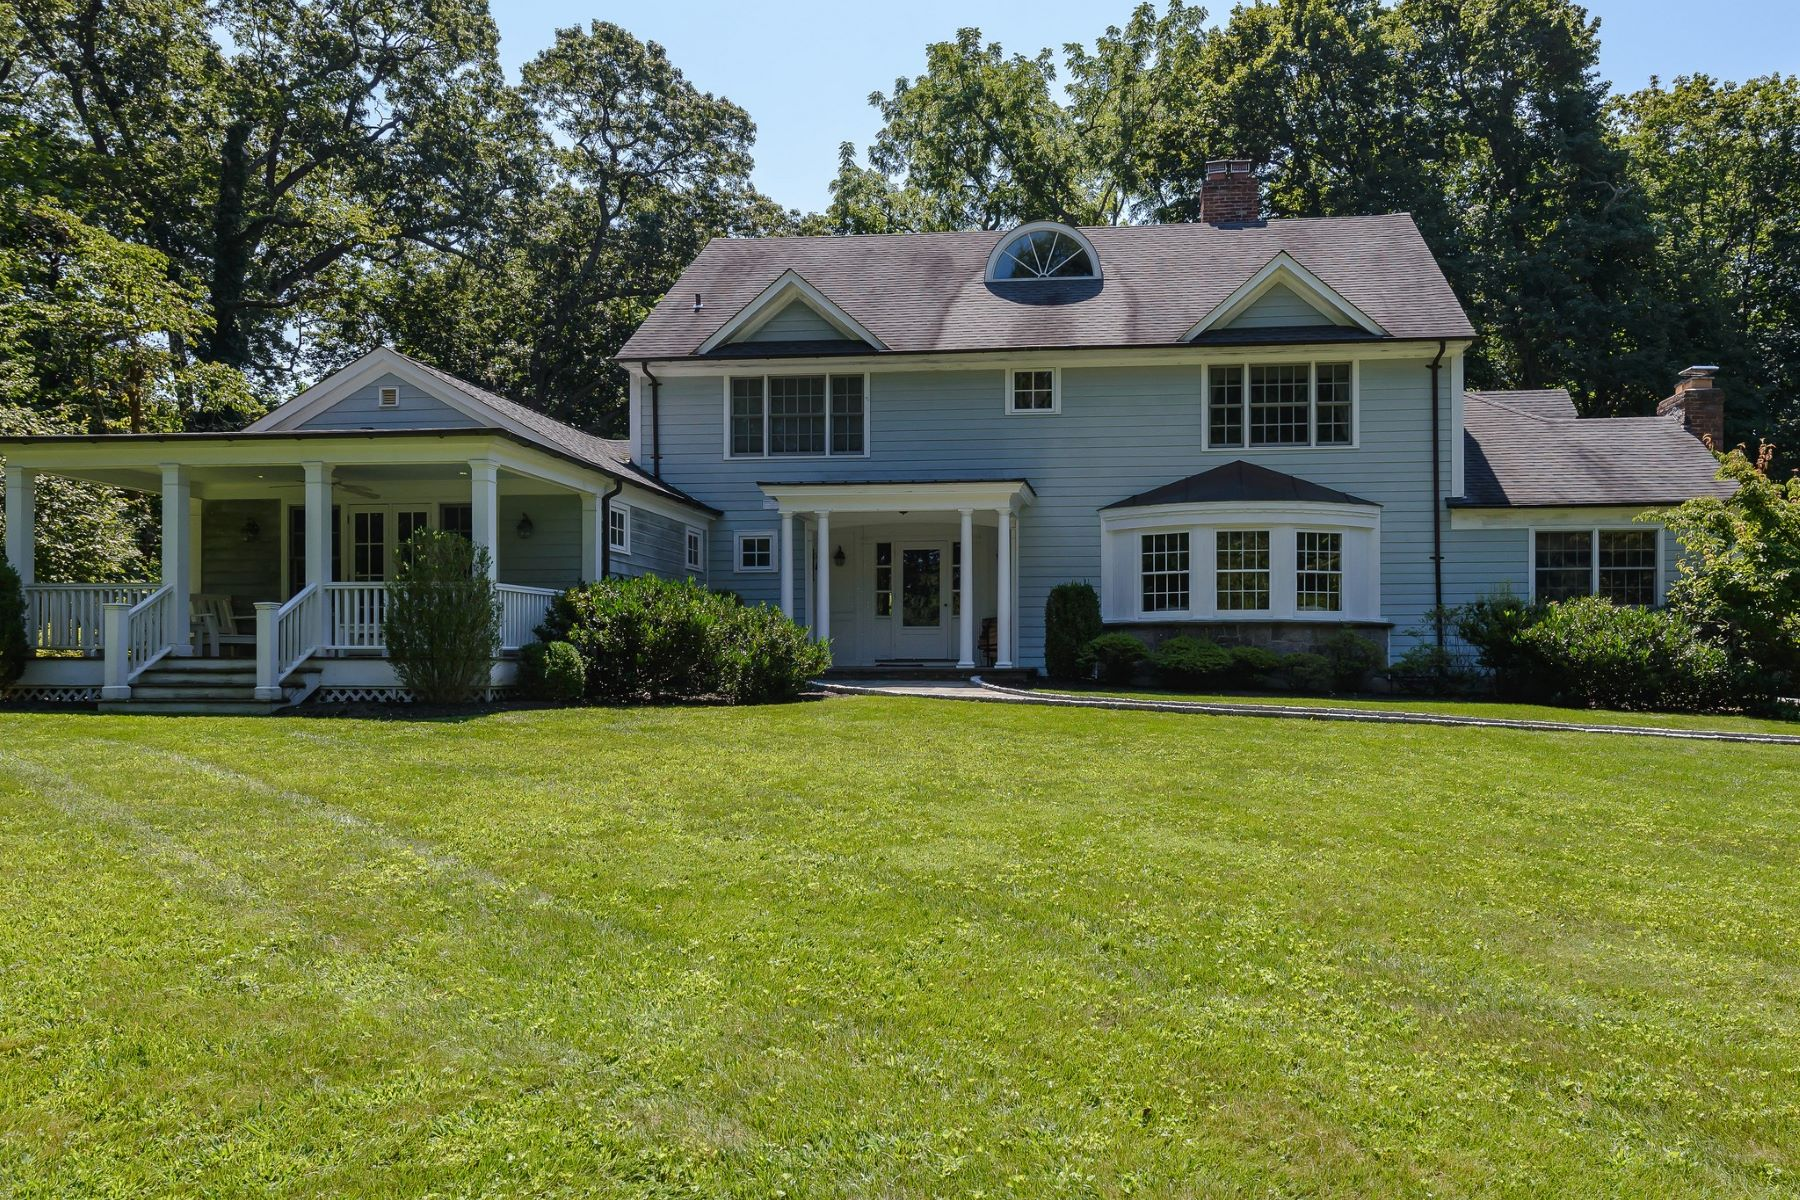 Single Family Homes for Active at Oyster Bay 67 Cove Road Oyster Bay, New York 11771 United States